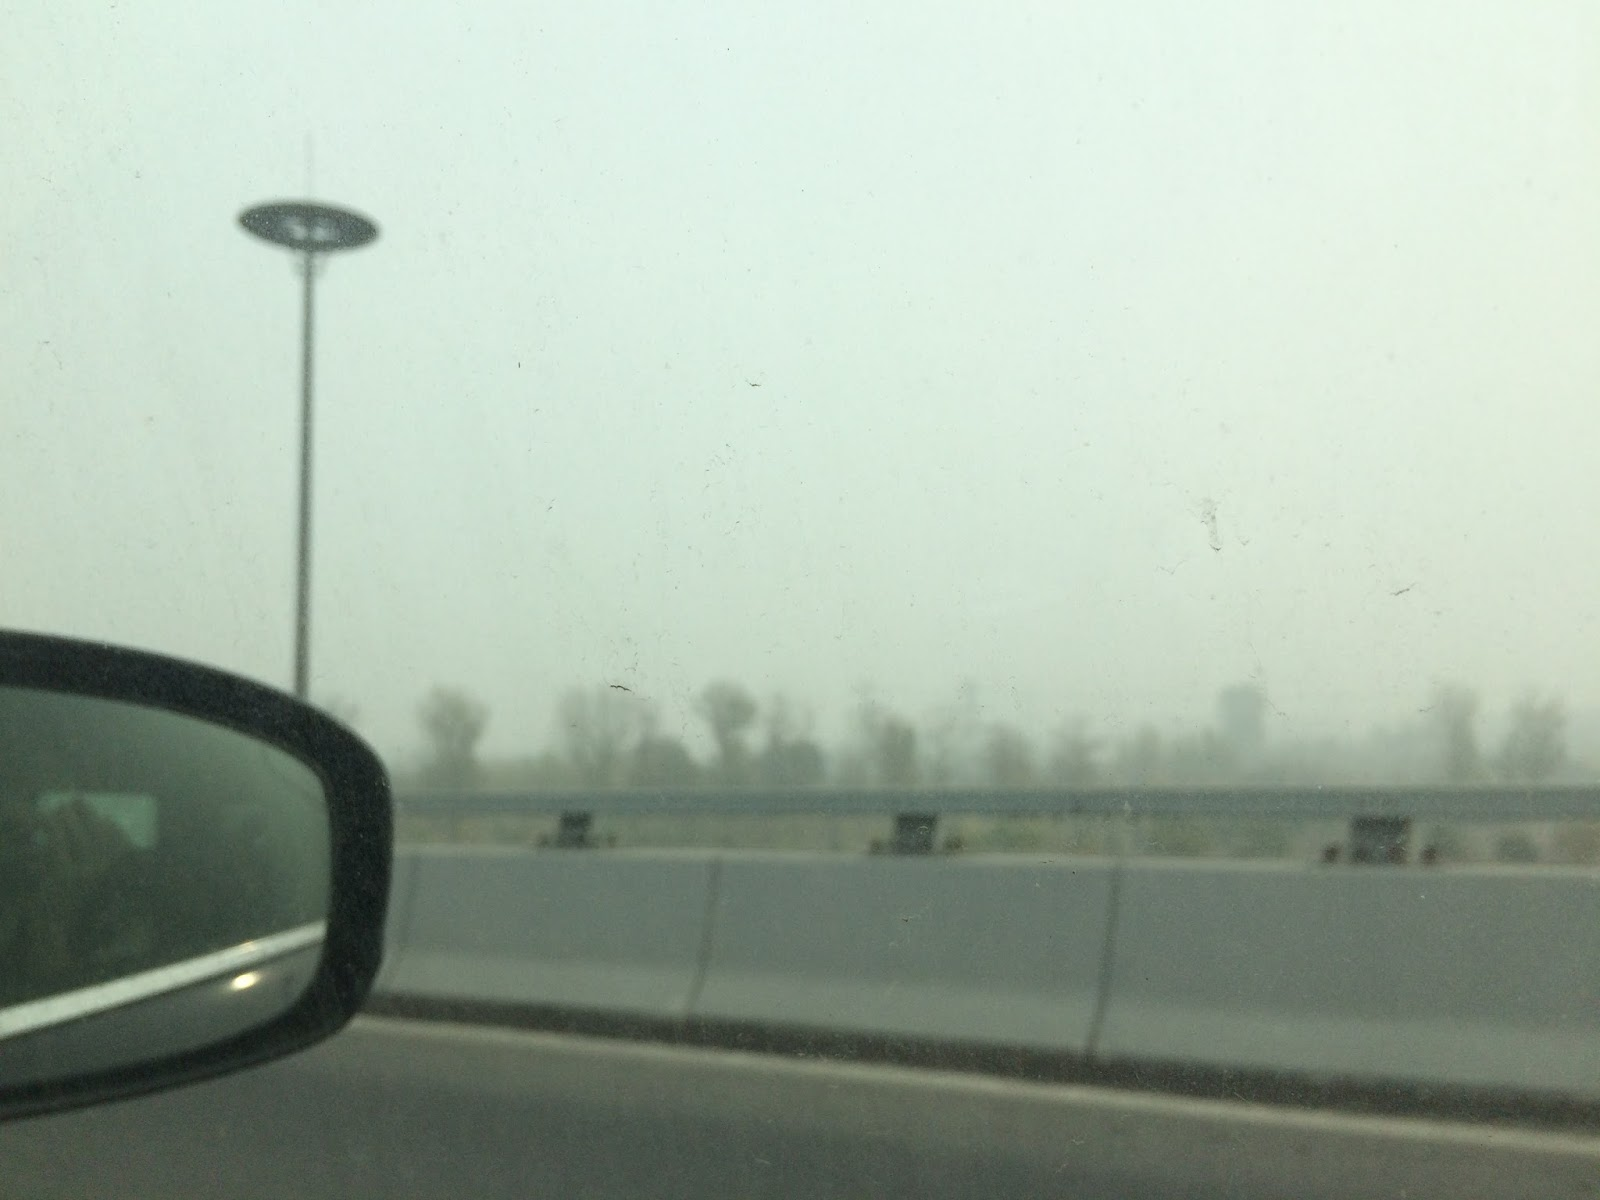 Family, Smog, Leaves – A Weekend in Beijing